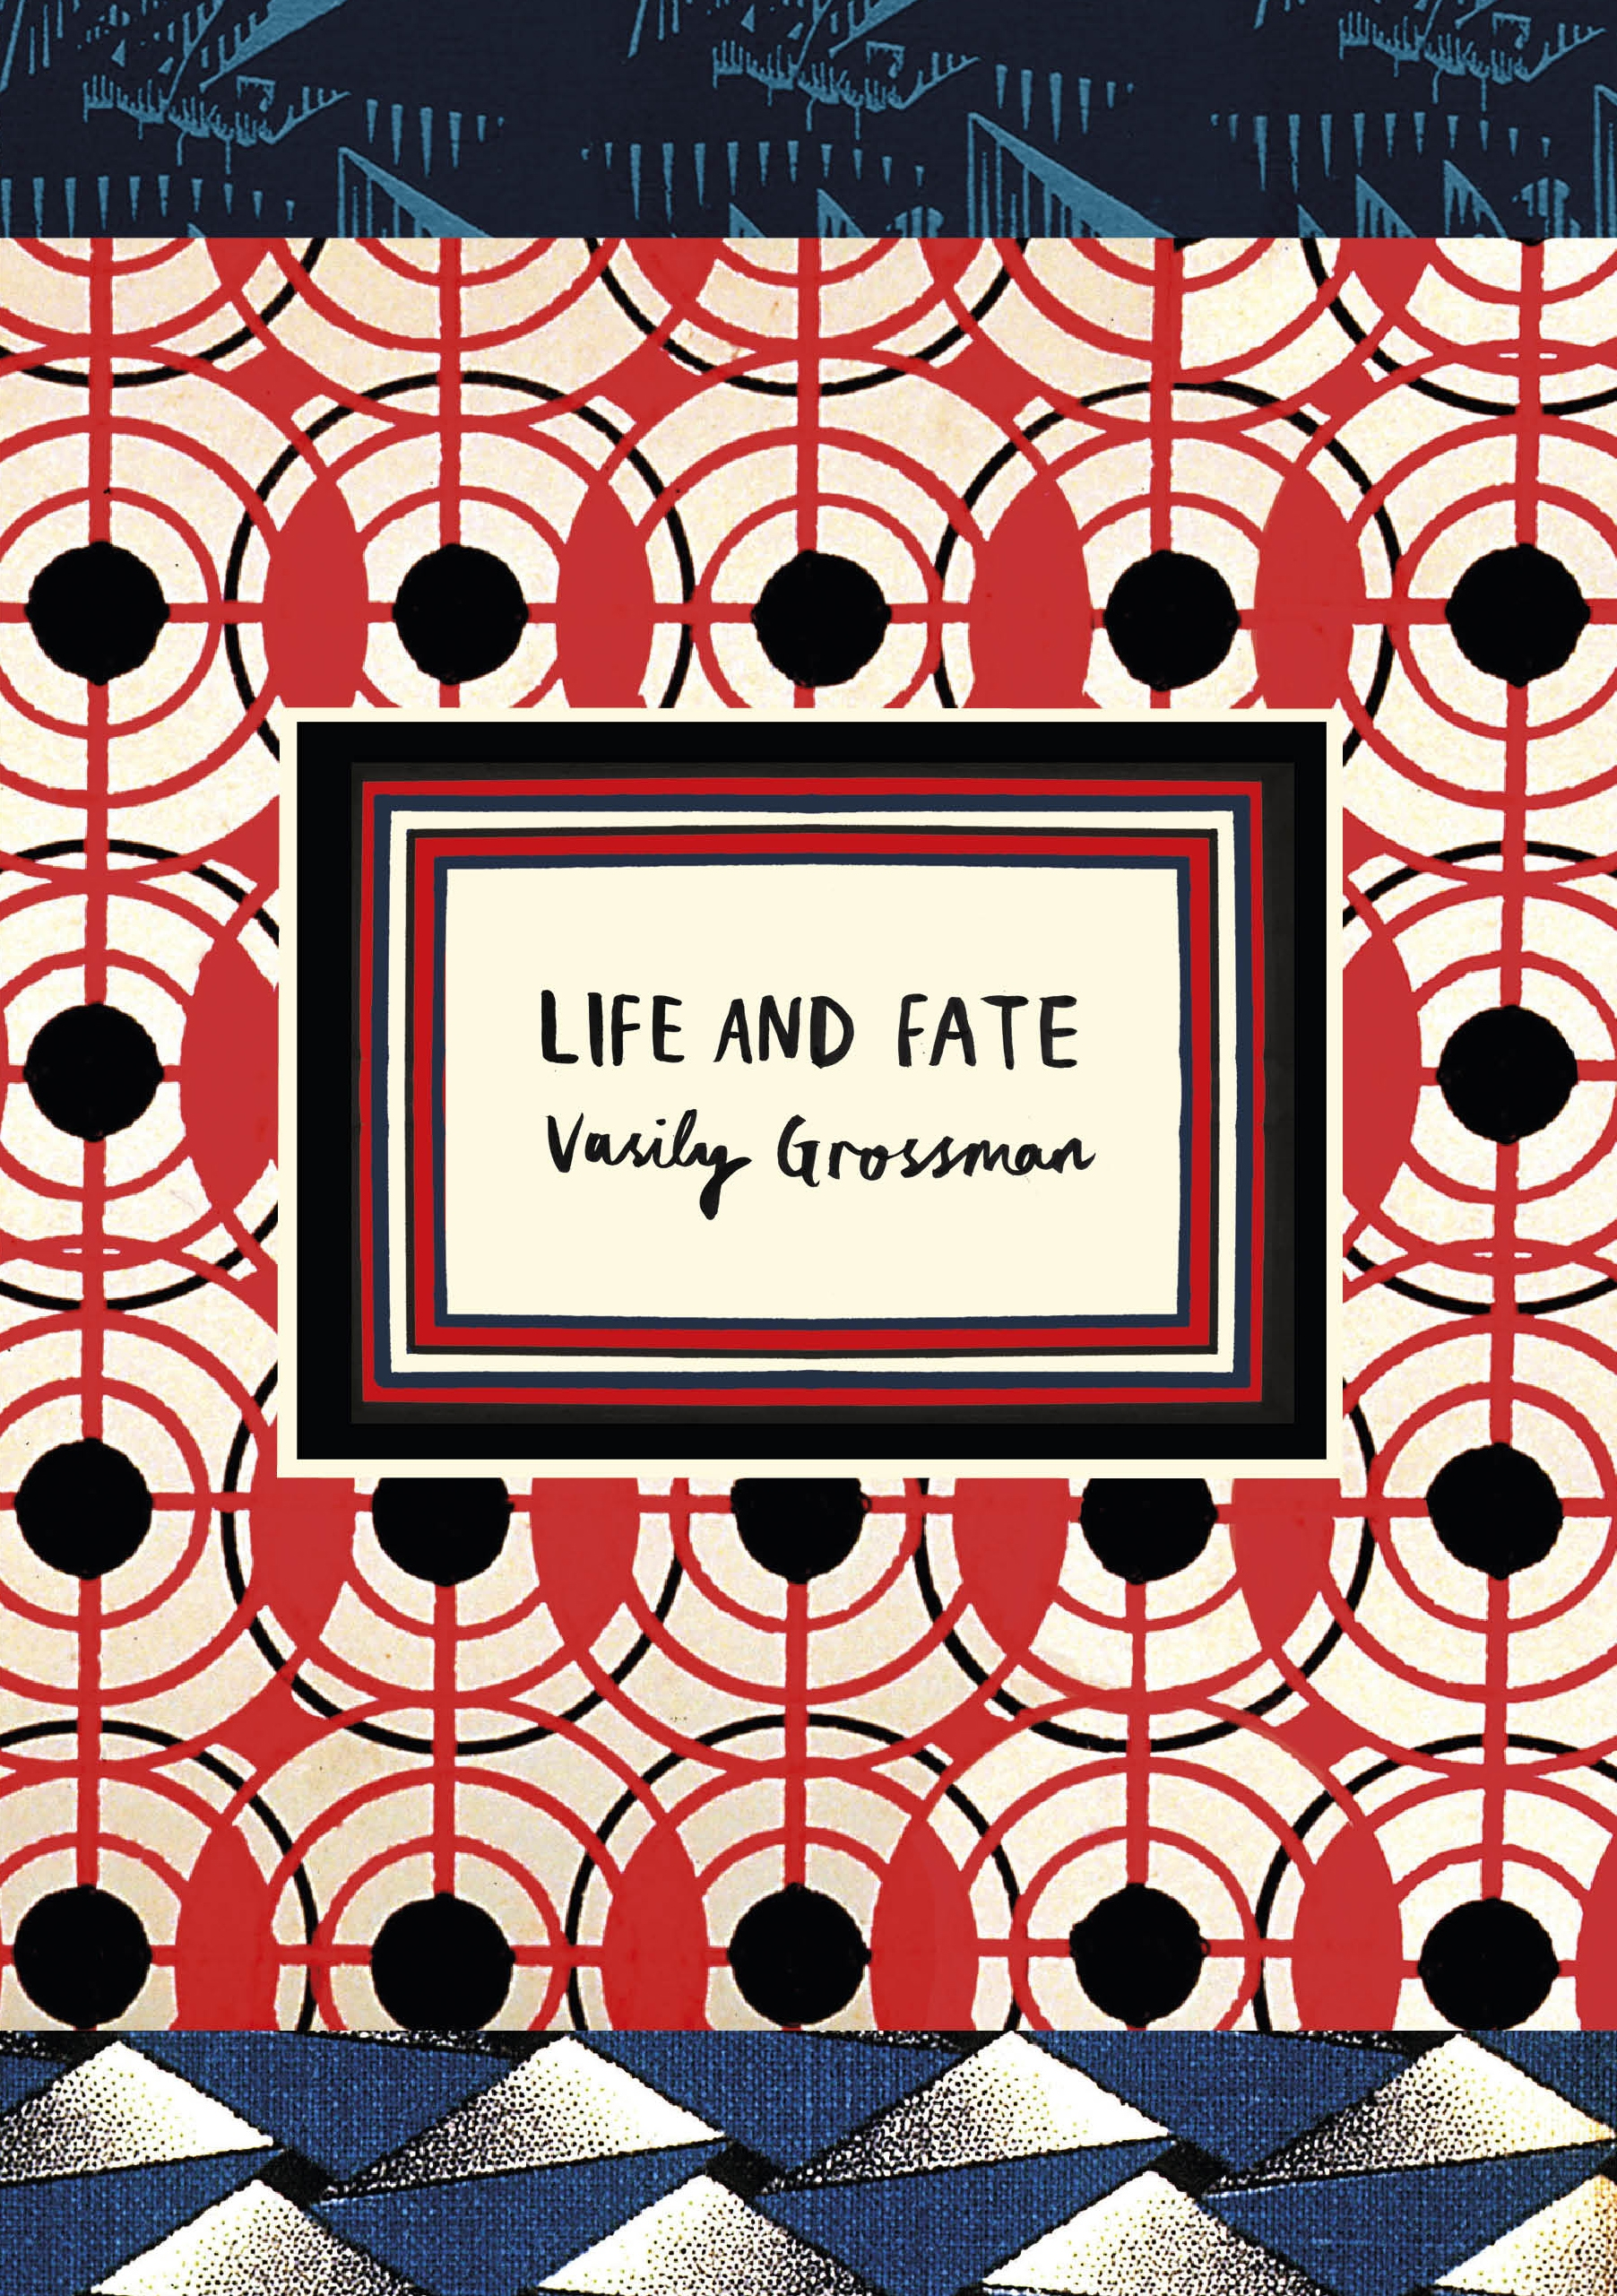 life and fate vintage classic russians series by vasily grossman